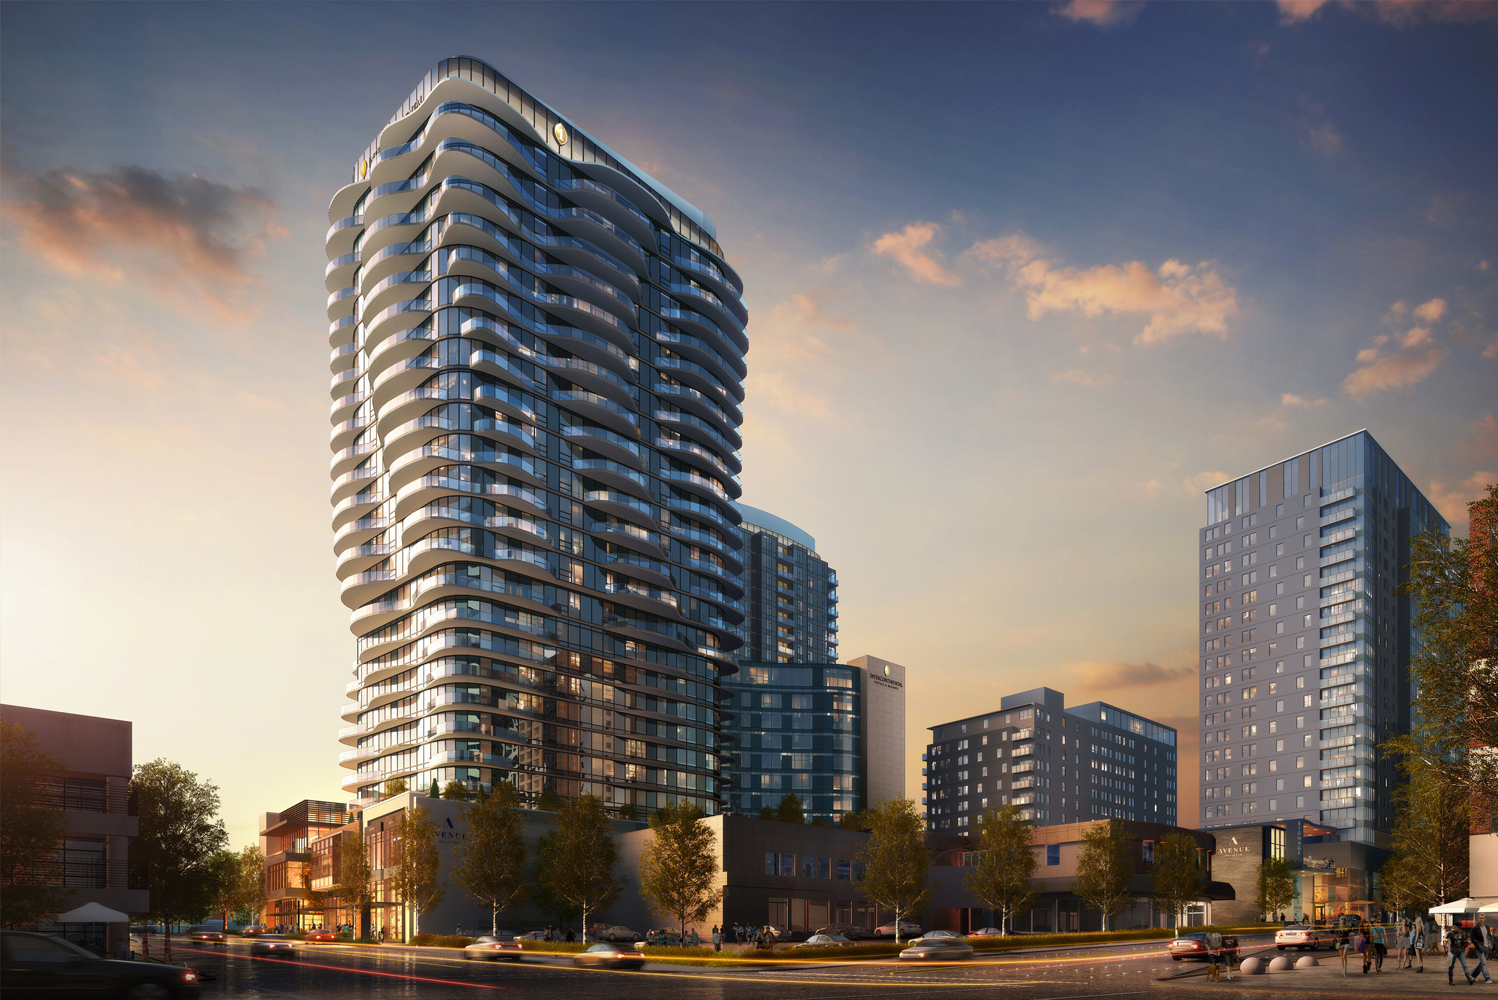 Fortress Development announced new details about Avenue Bellevue, its mixed-use project in downtown Bellevue, Washington.